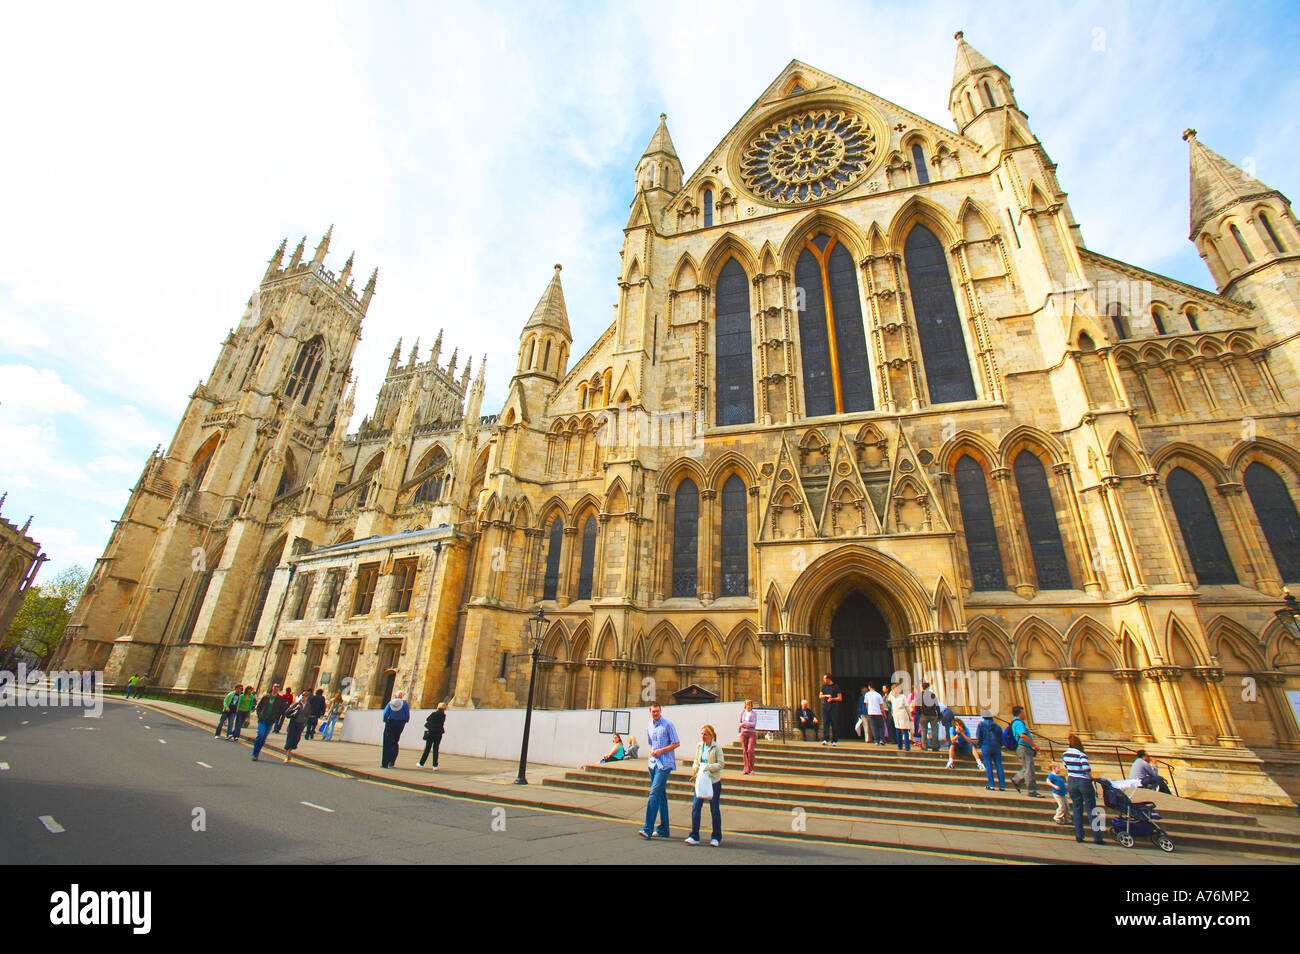 Extreme view of the splendid York Minster with tourists - Stock Image